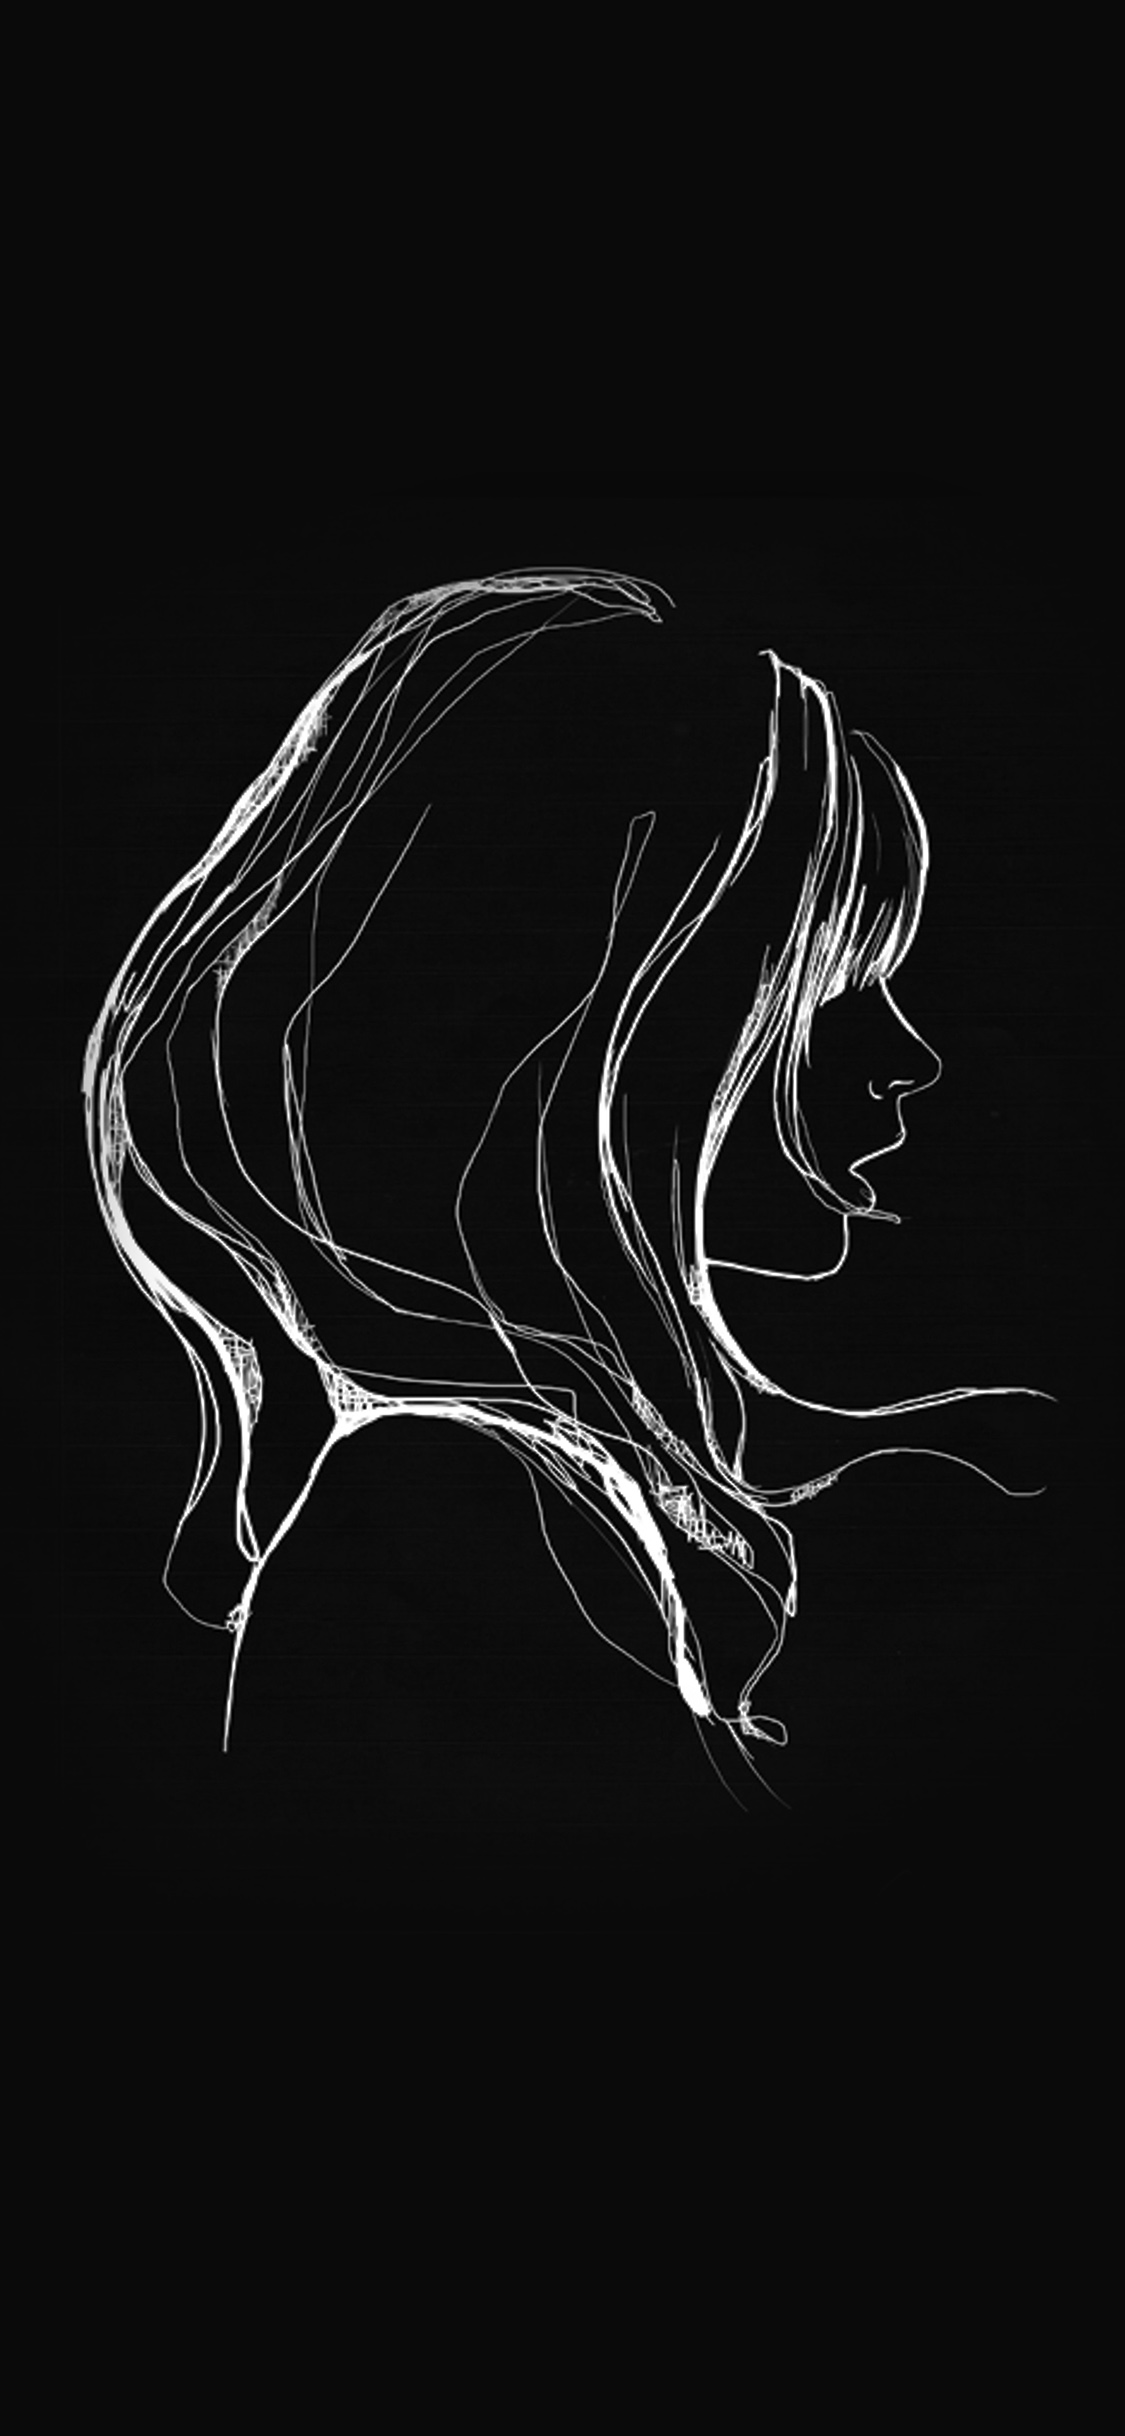 iPhonexpapers.com-Apple-iPhone-wallpaper-az88-drawing-simple-minimal-girl-illustration-art-dark